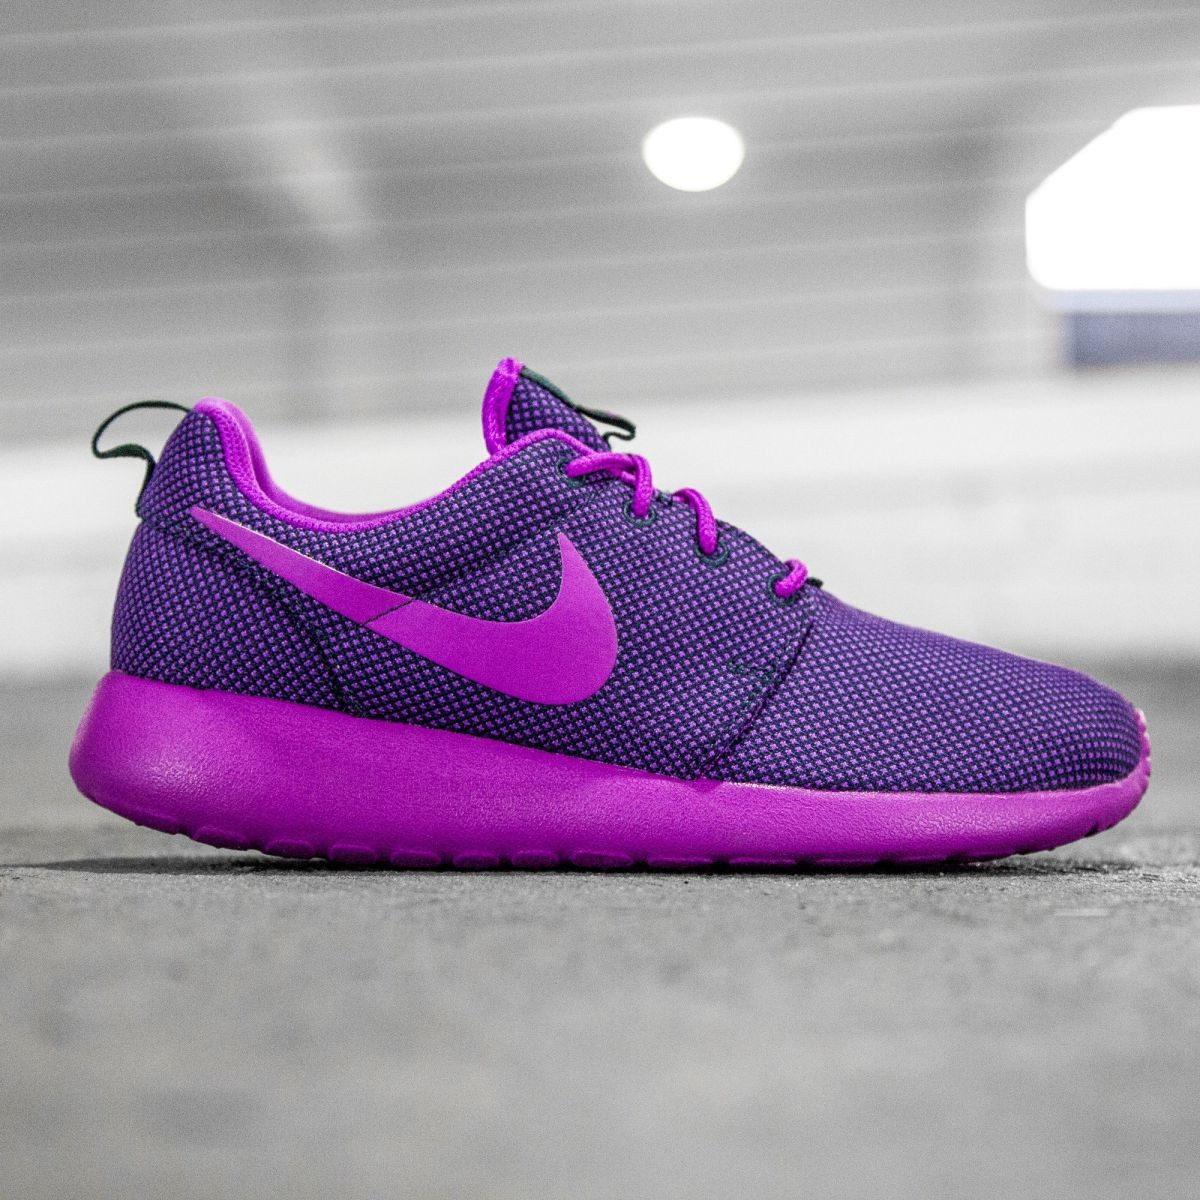 on sale 18cde 2851c ... sweden nike women roshe one purple midnight teal vivid purple dark gray  c6472 0697b